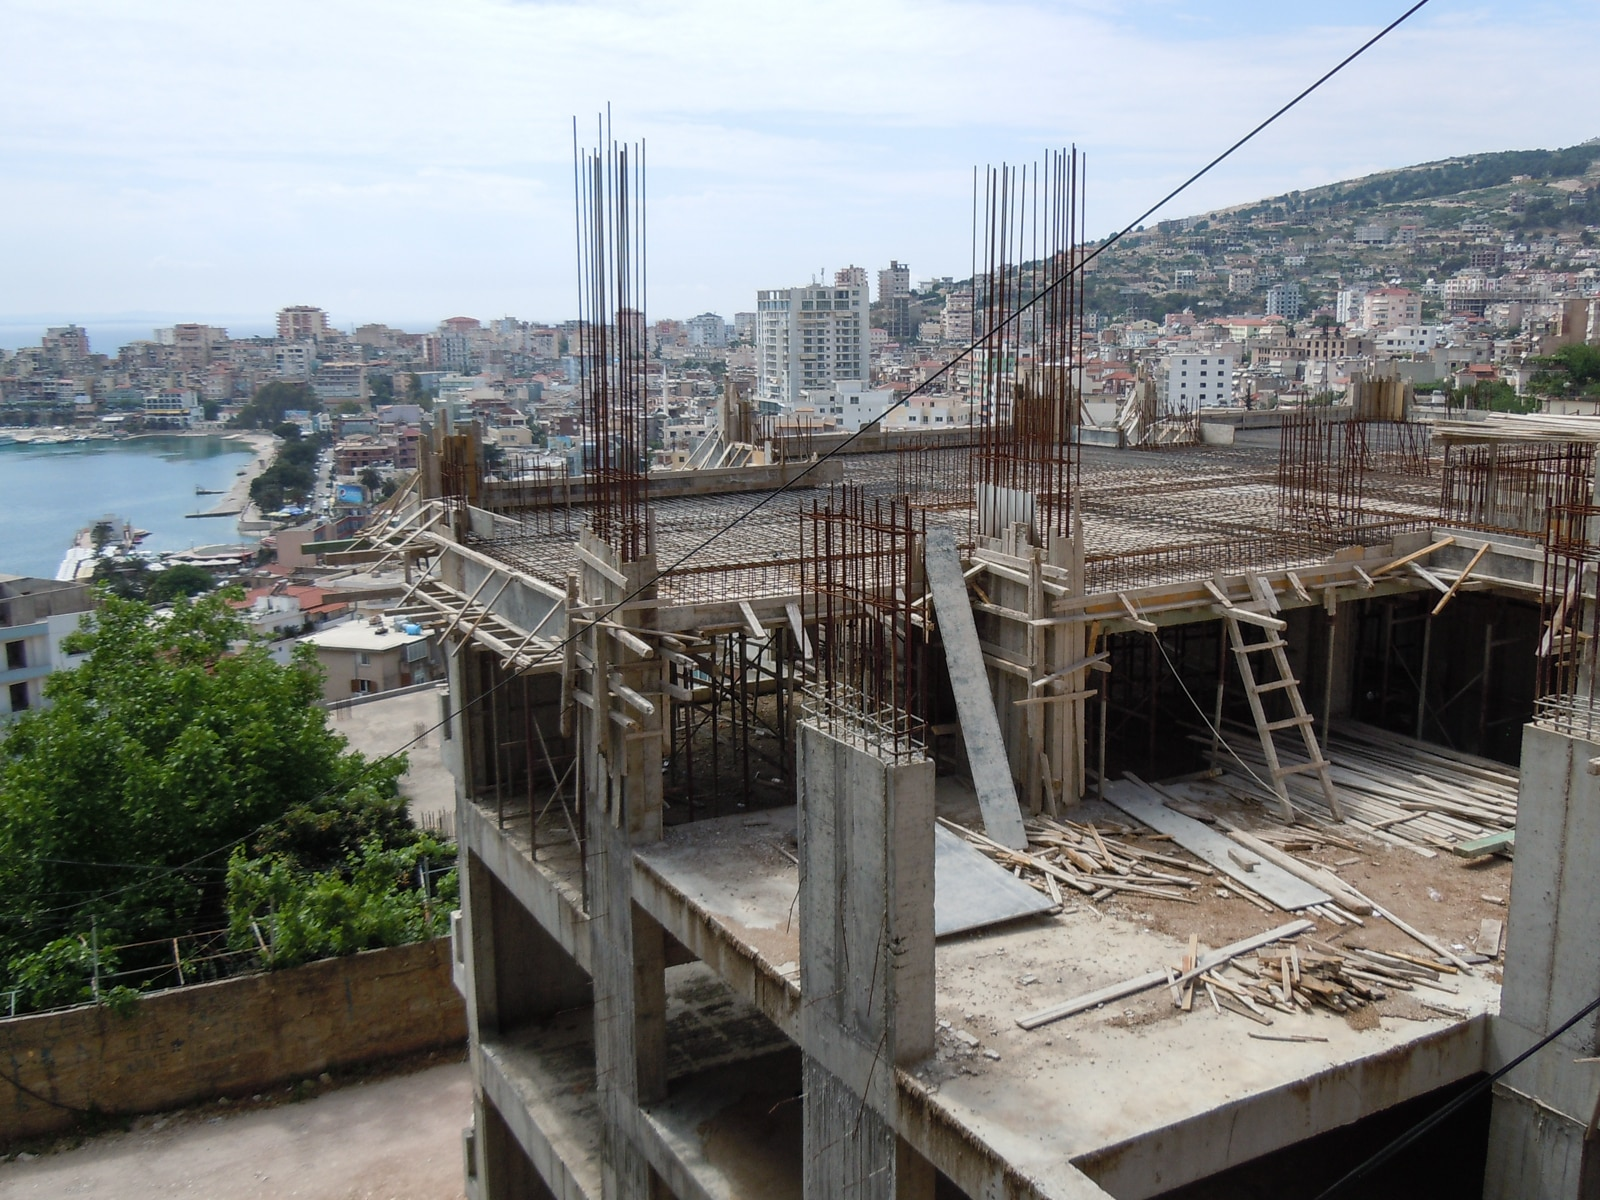 The building boom in Saranda, the country's tourist centre